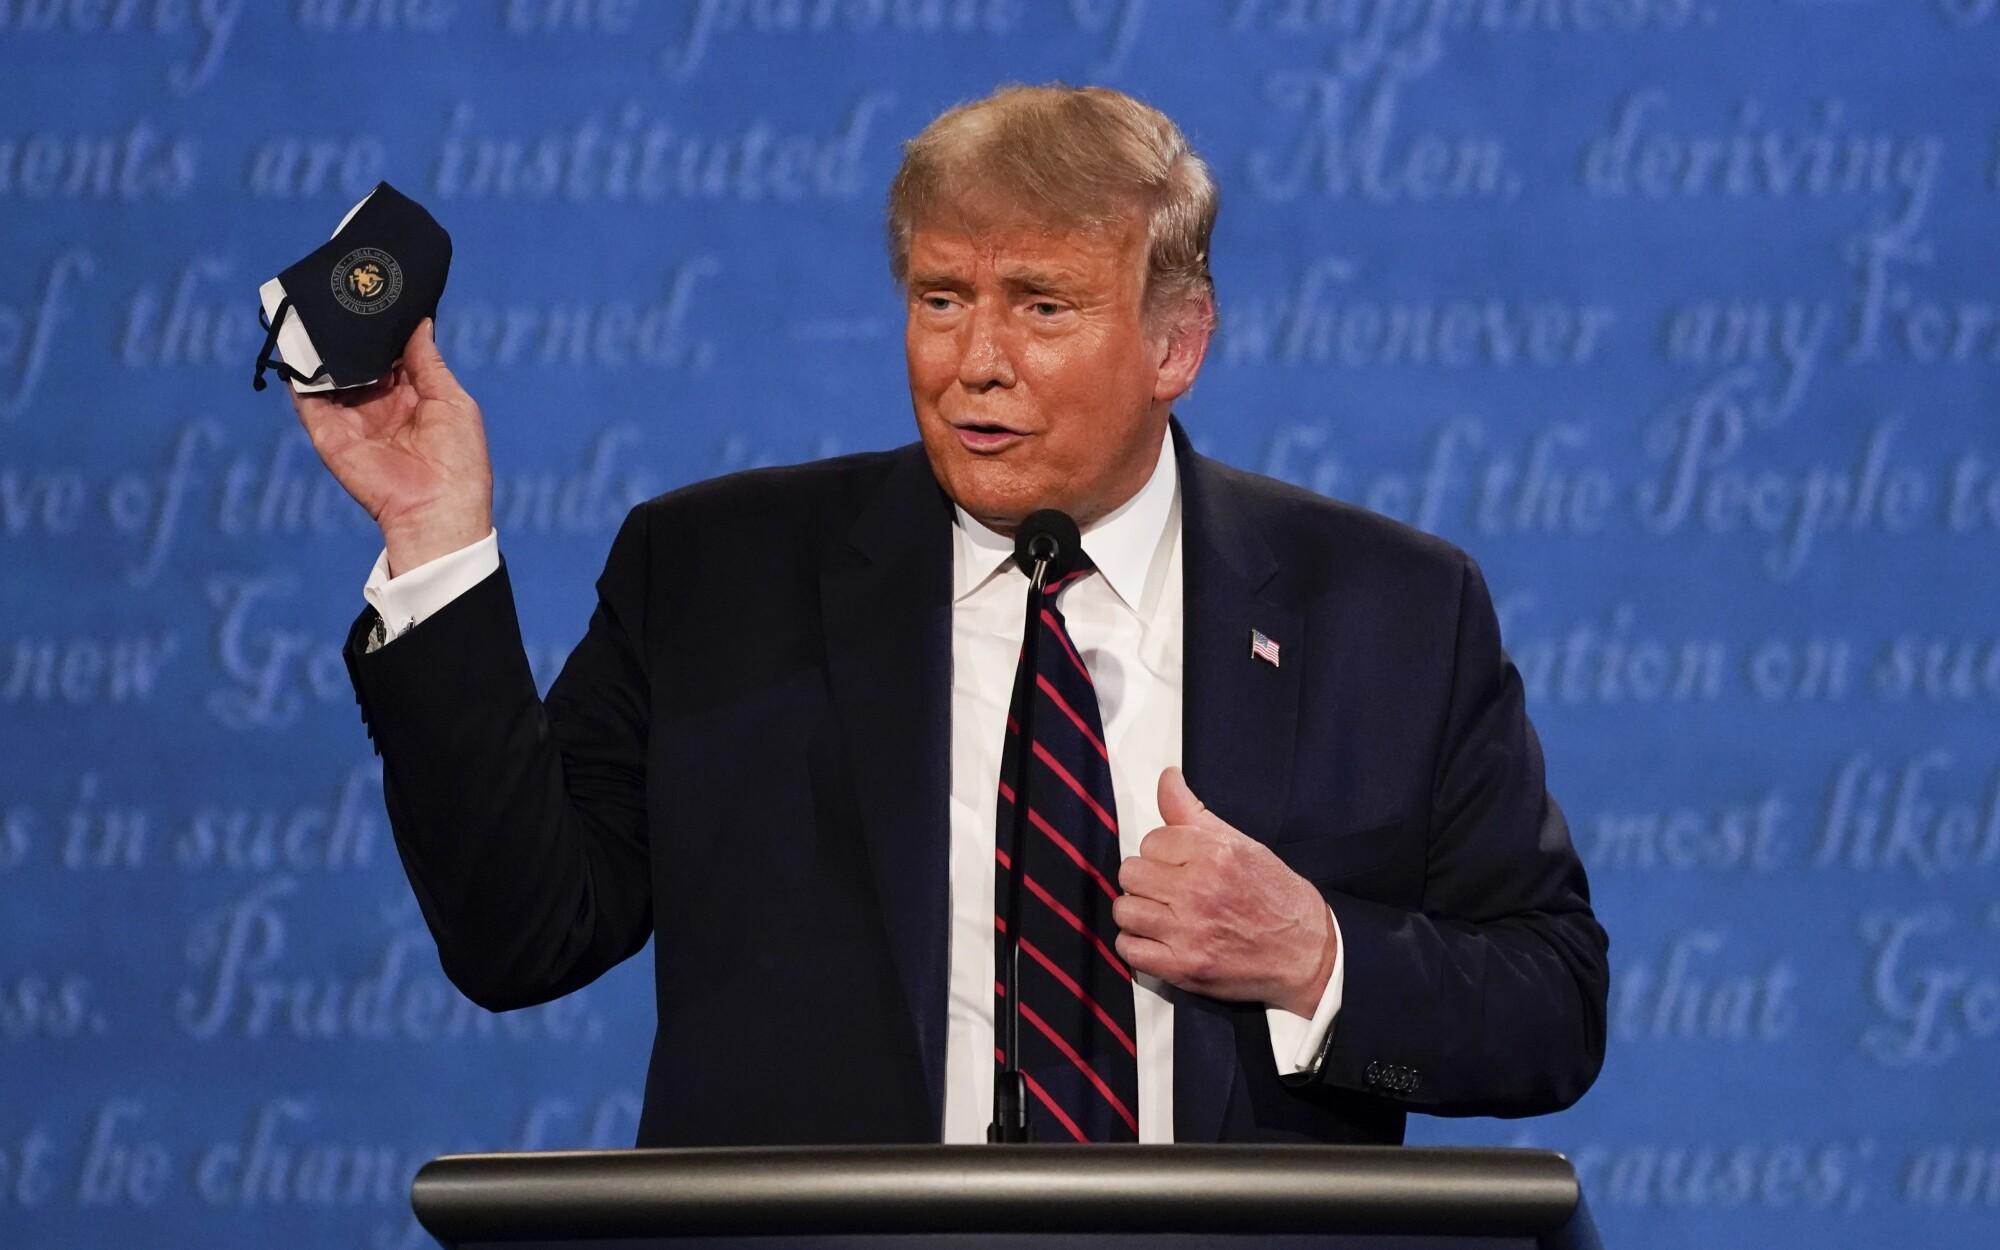 President Trump holds up his face mask during Tuesday's debate in Cleveland